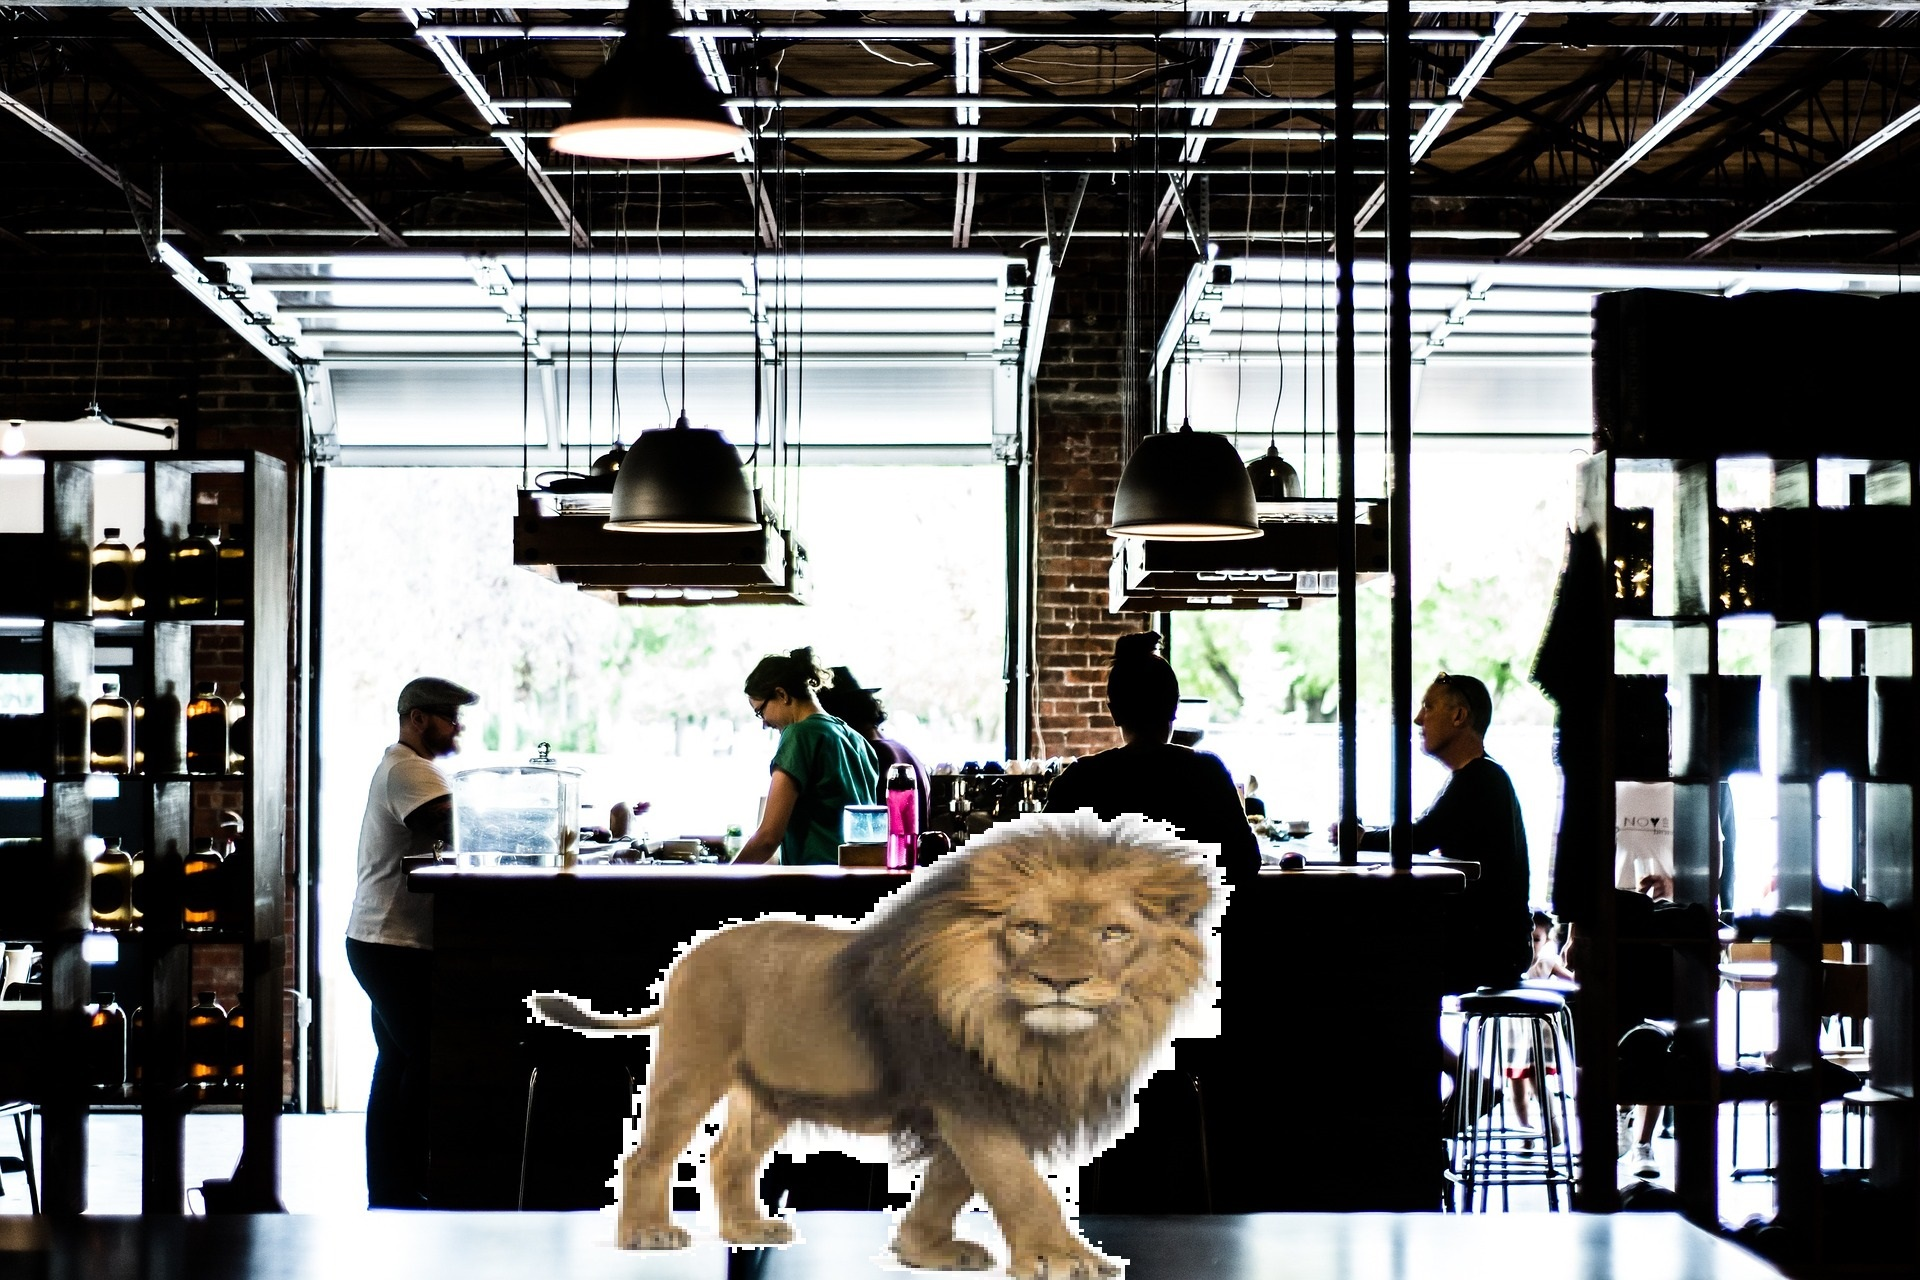 Lion in a Cafe